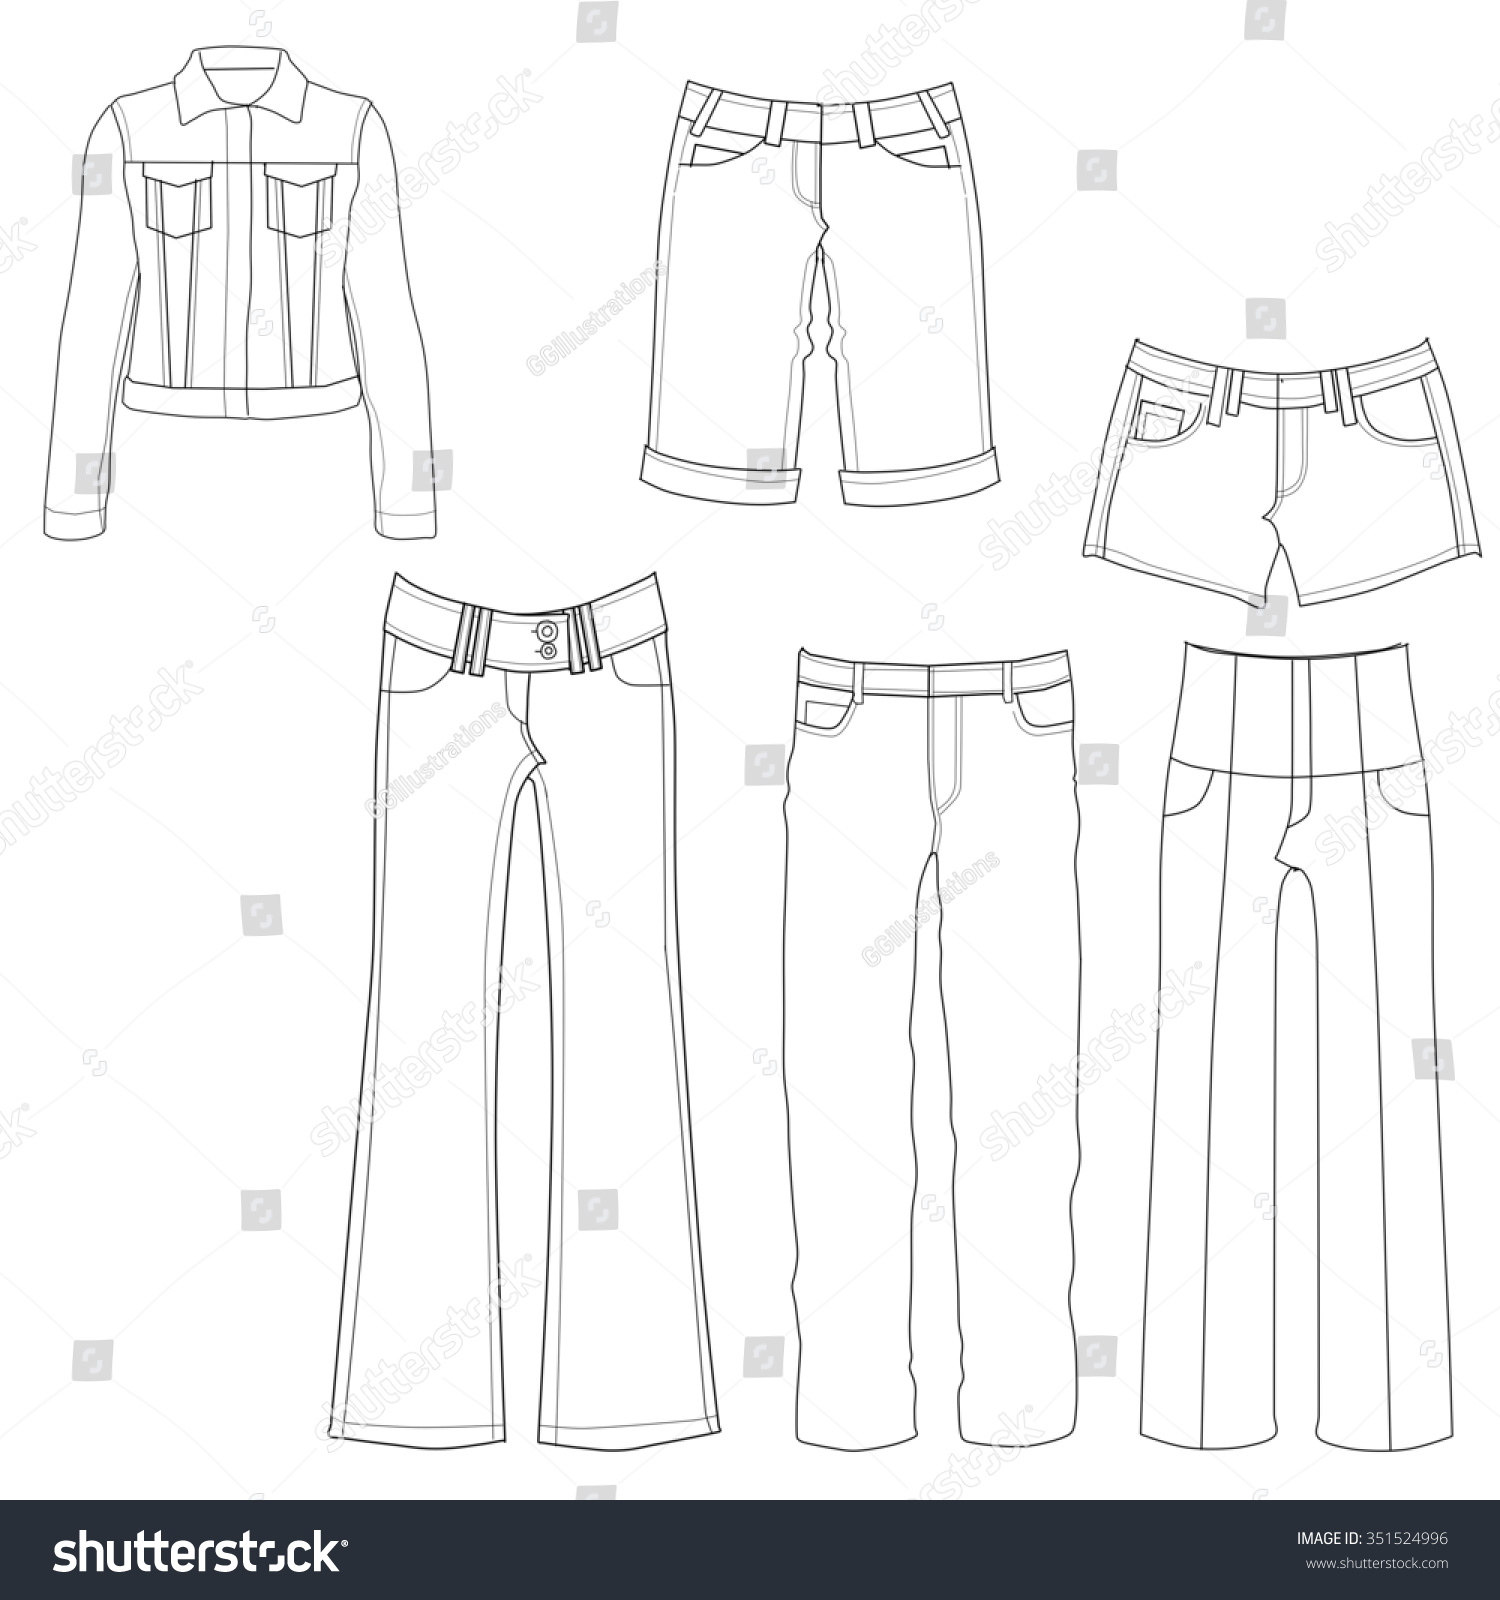 flat template sketches different denim jeansのイラスト素材 351524996